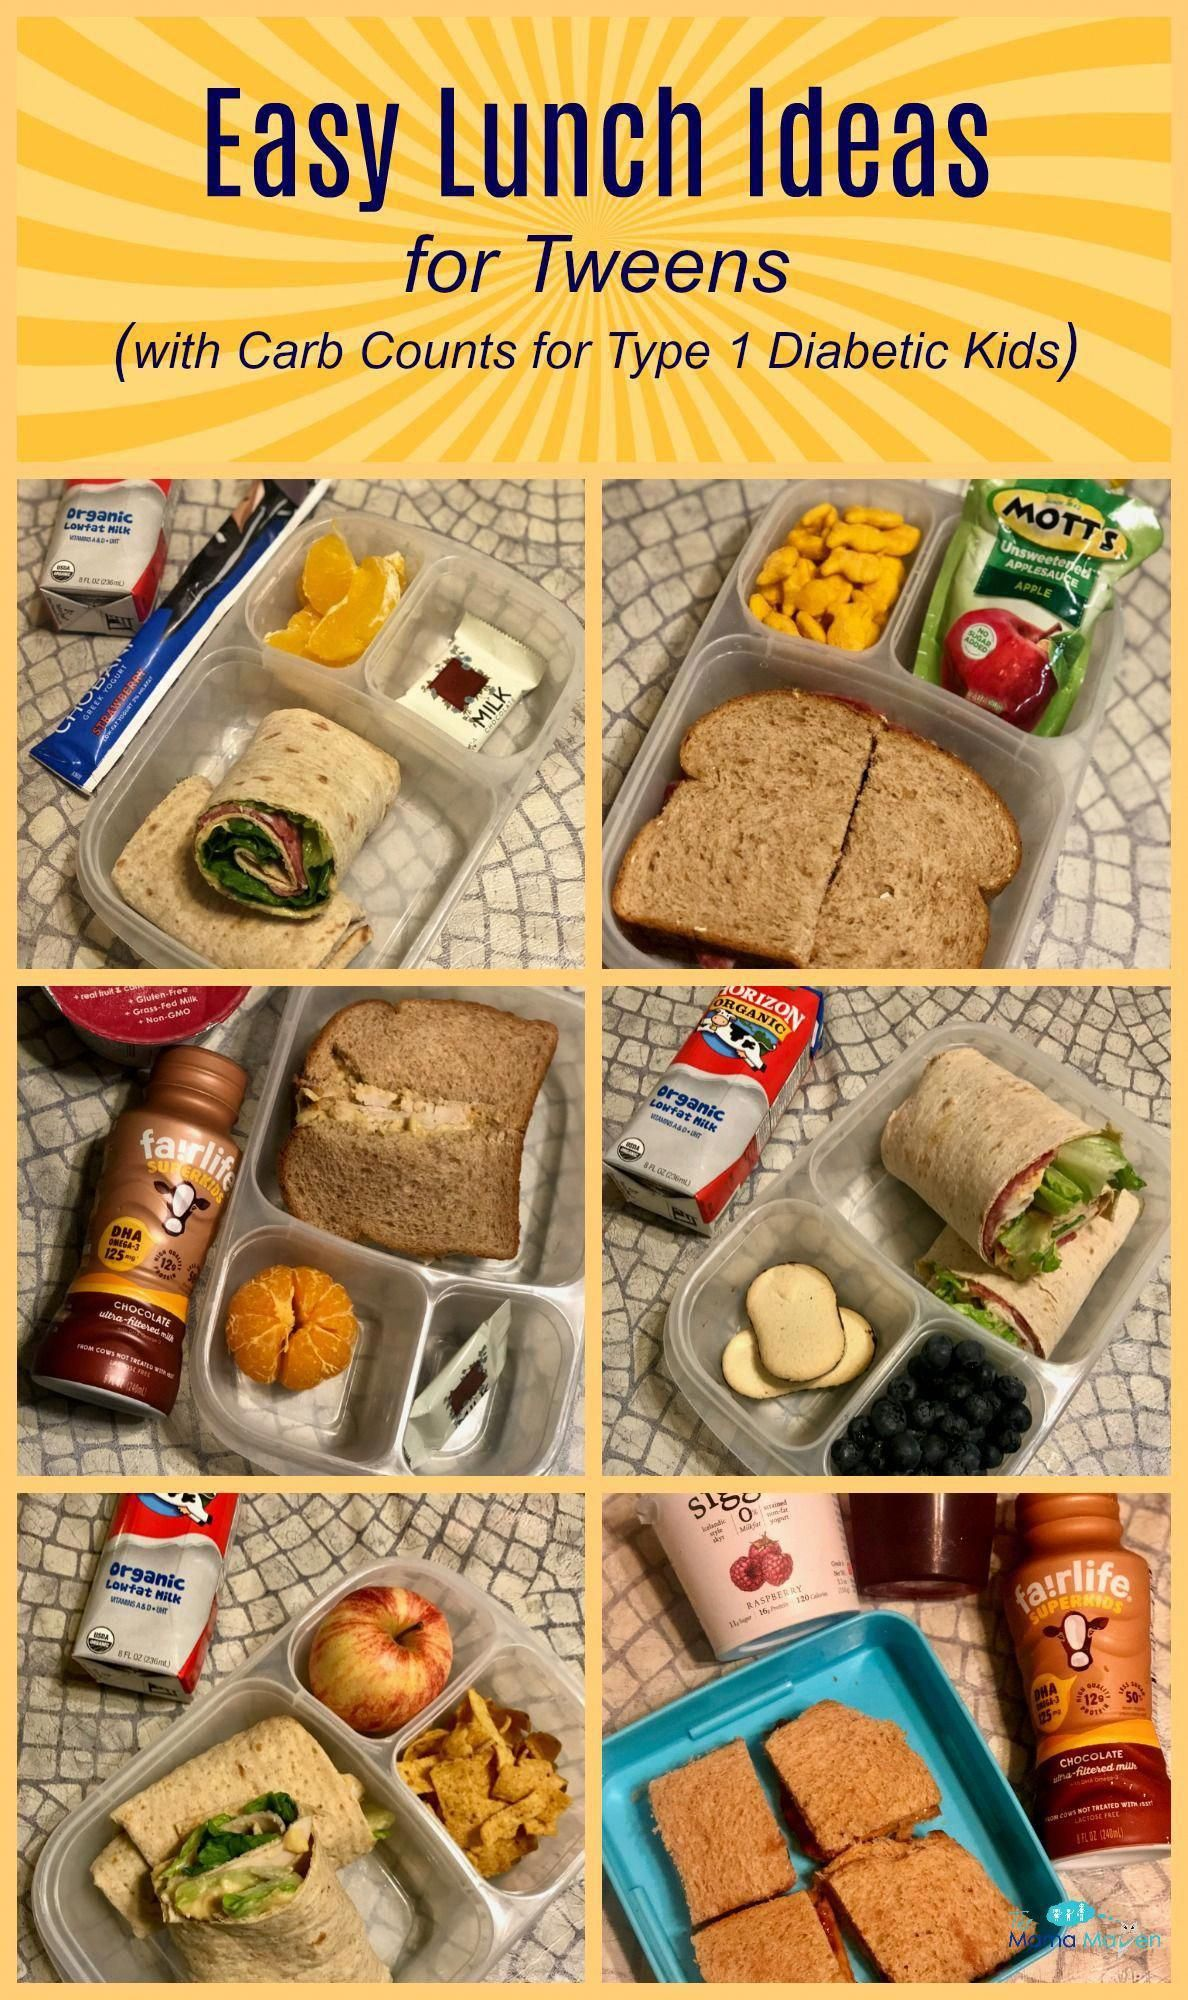 Easy Lunch Ideas For Tweens With Carb Counts For Type 1